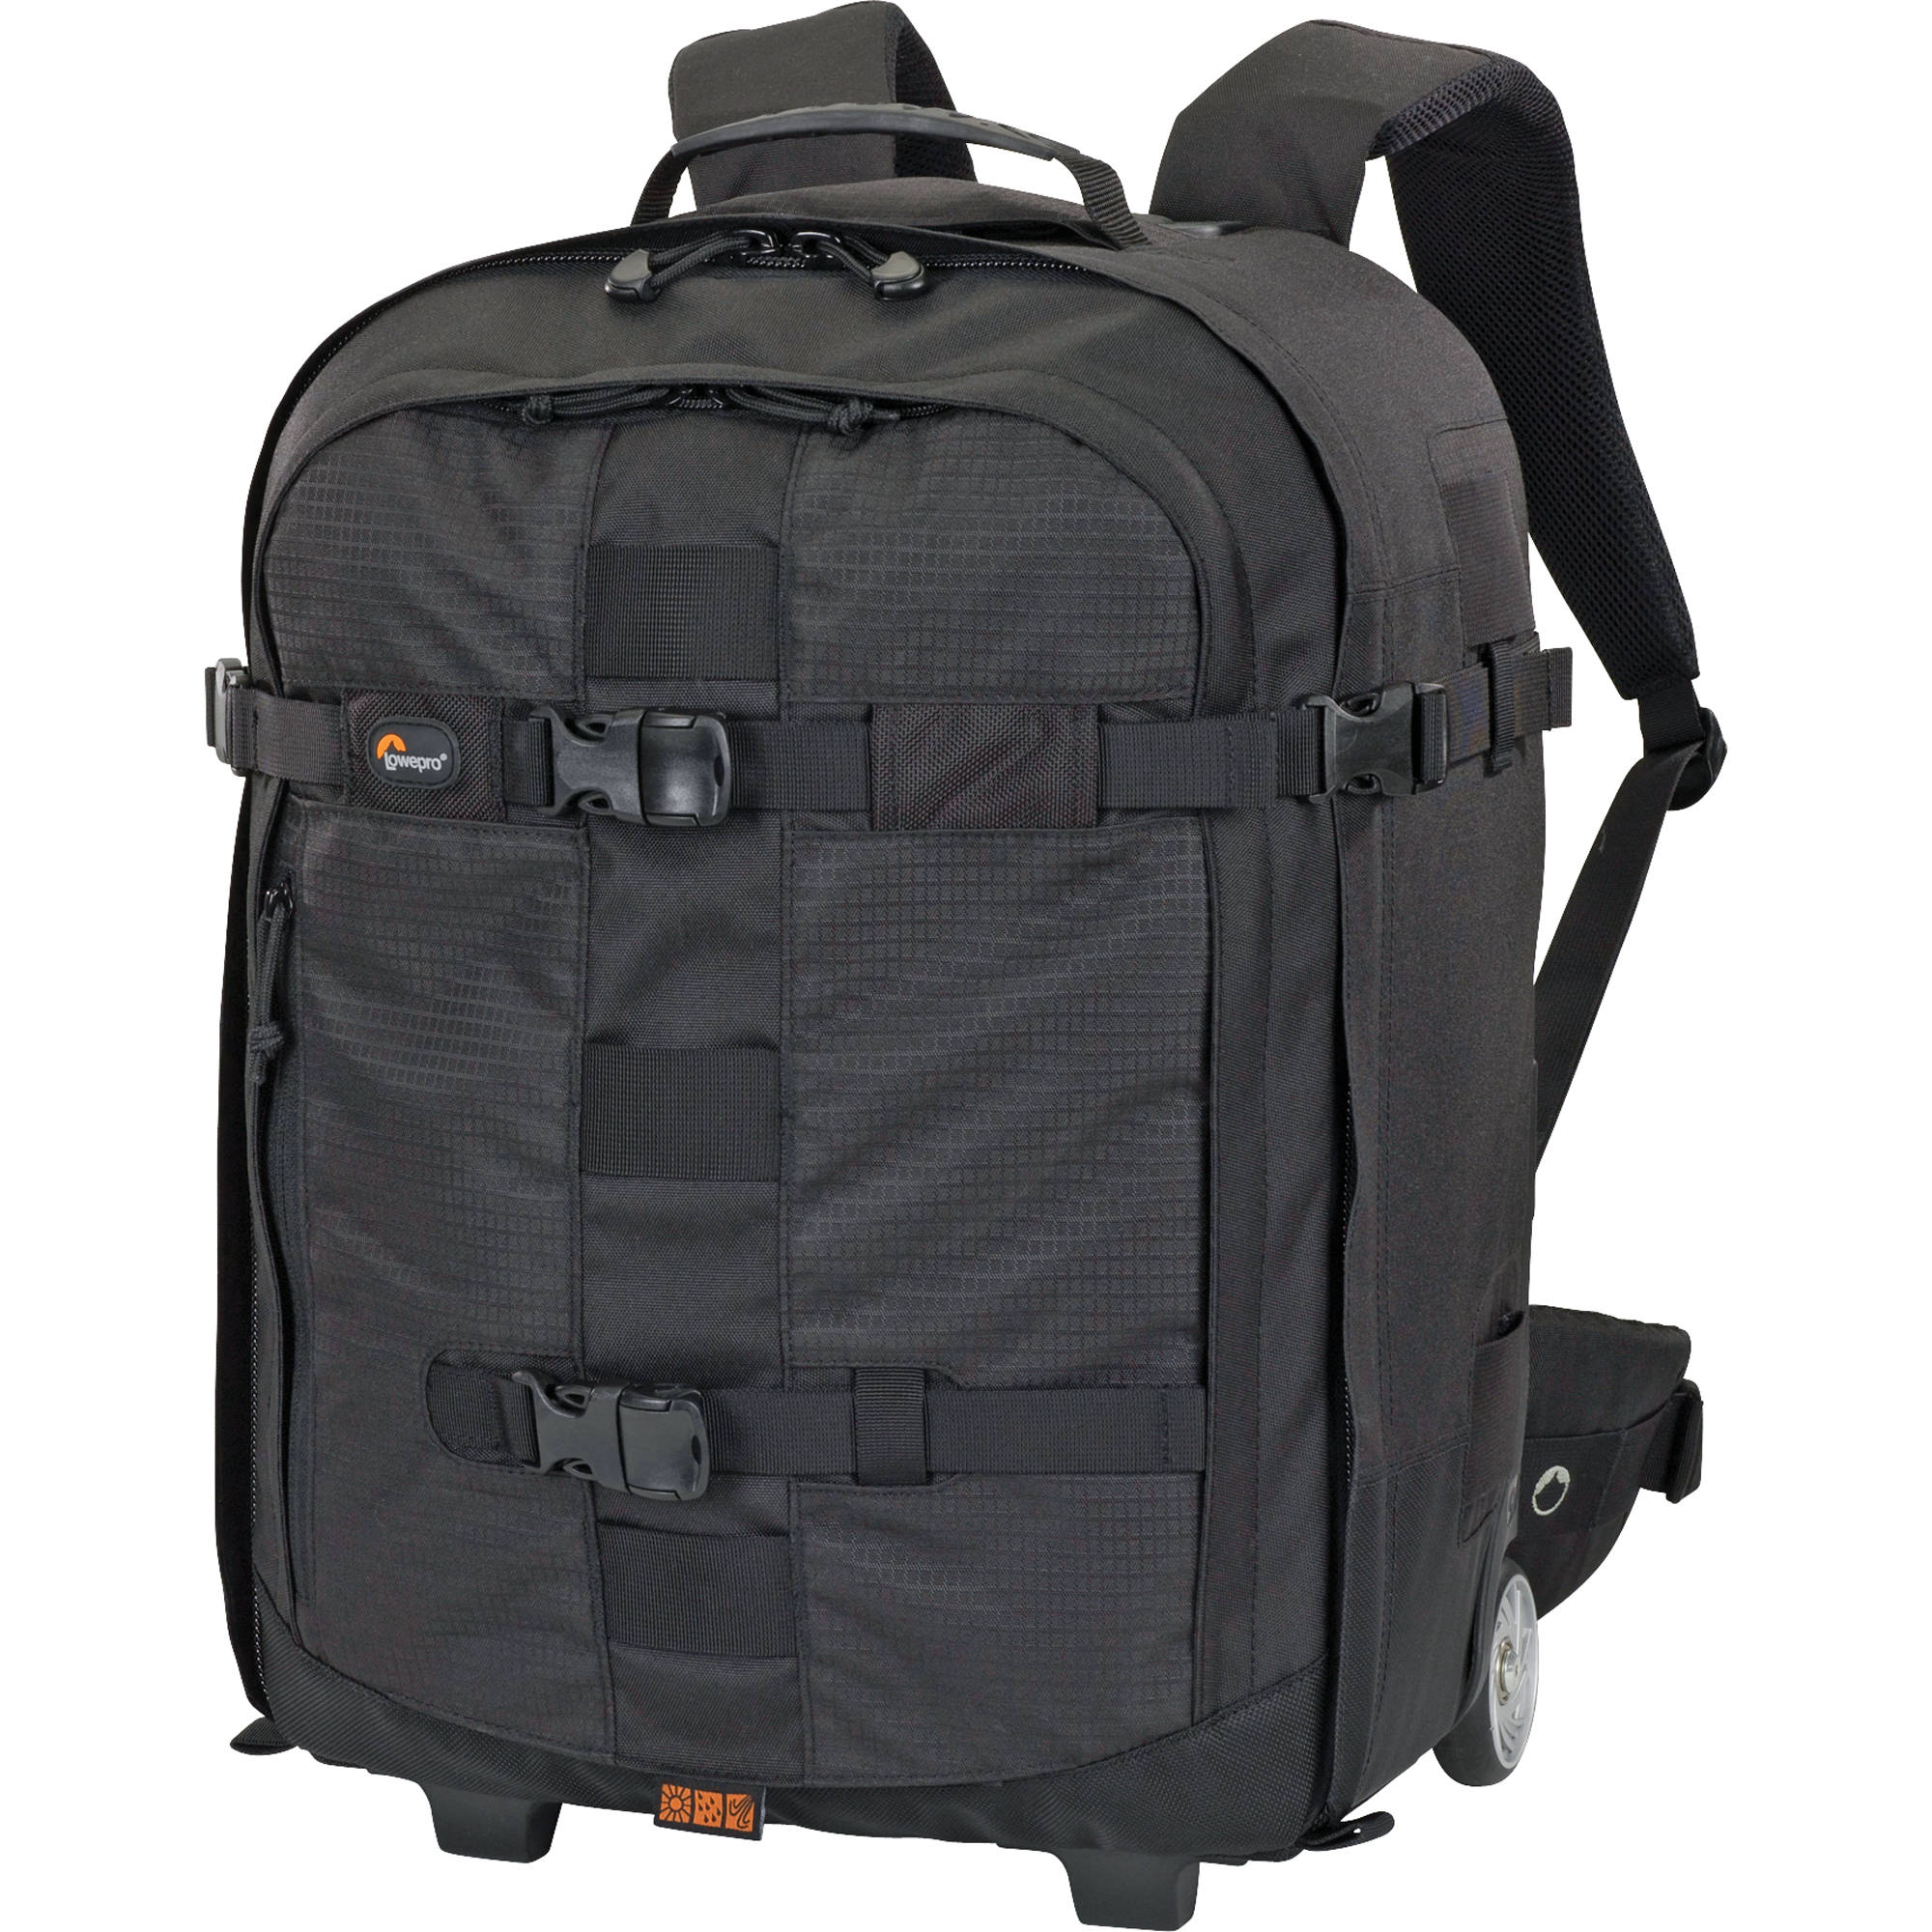 Lowepro Pro Runner x450 Rolling AW Backpack LP36147 B&H Photo